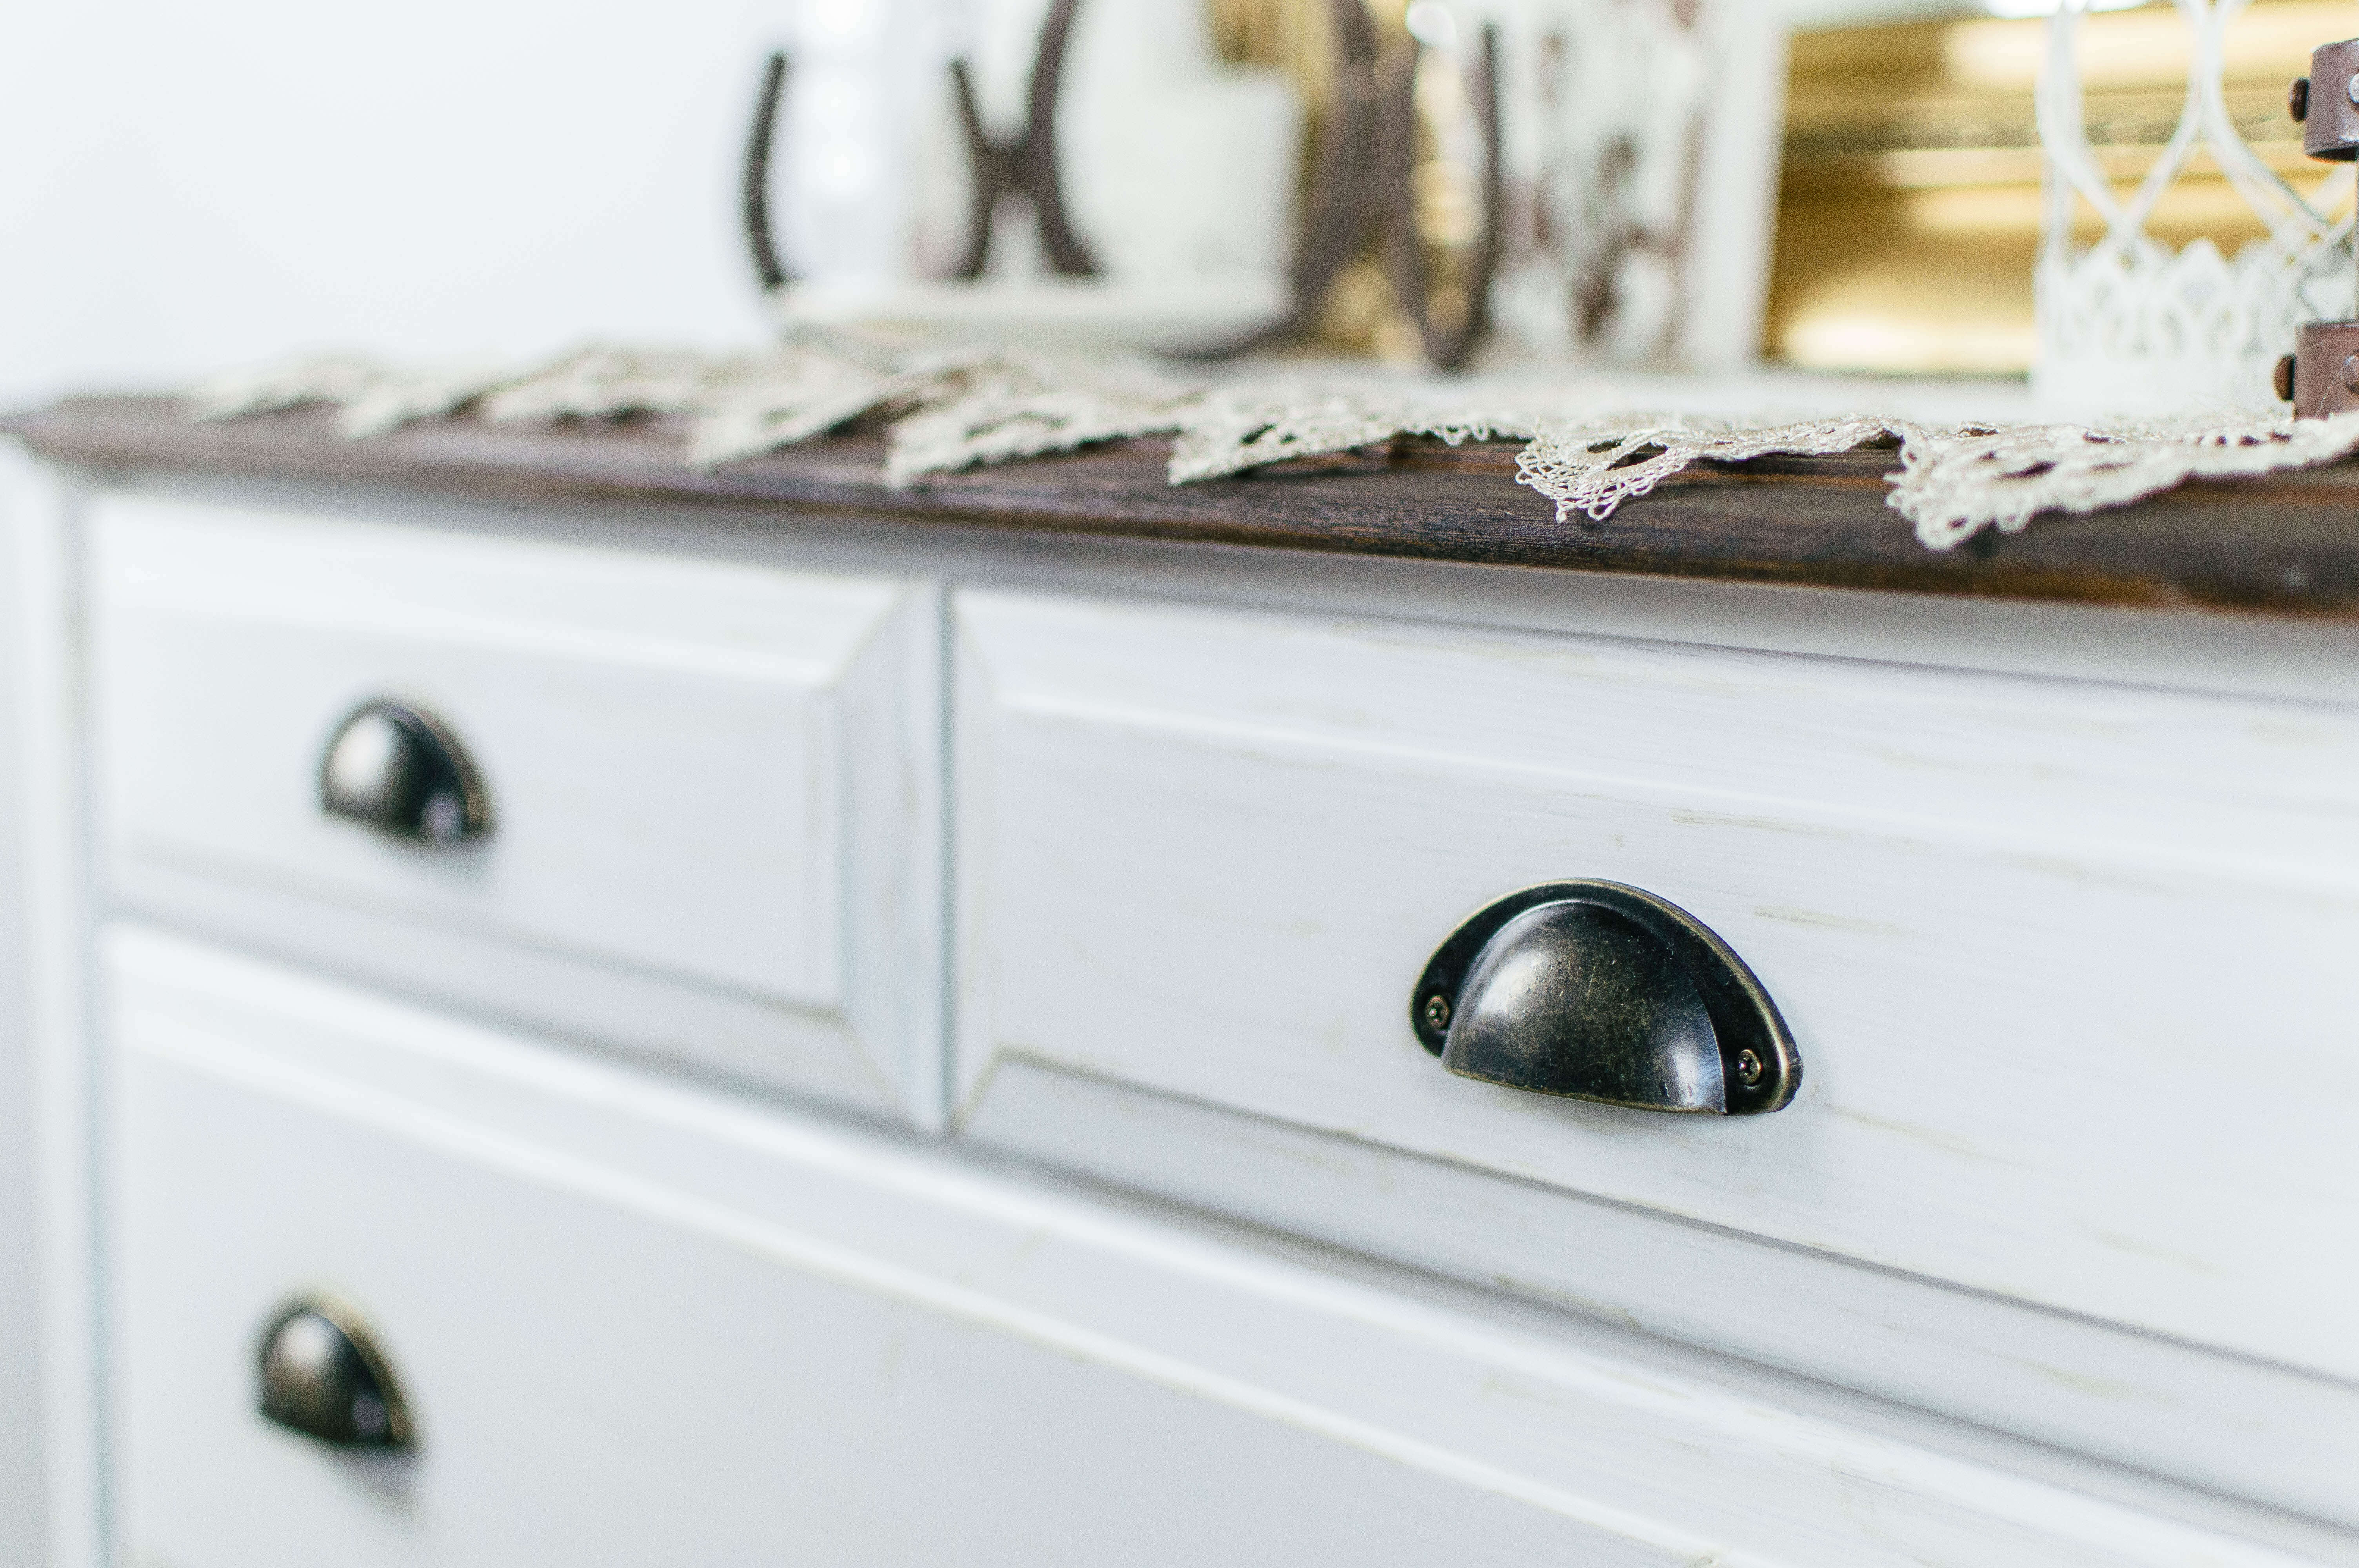 Farmhouse Guest Room Dresser Transformation / DIY Furniture Flip Before + After / Farmhouse Drawer Pulls